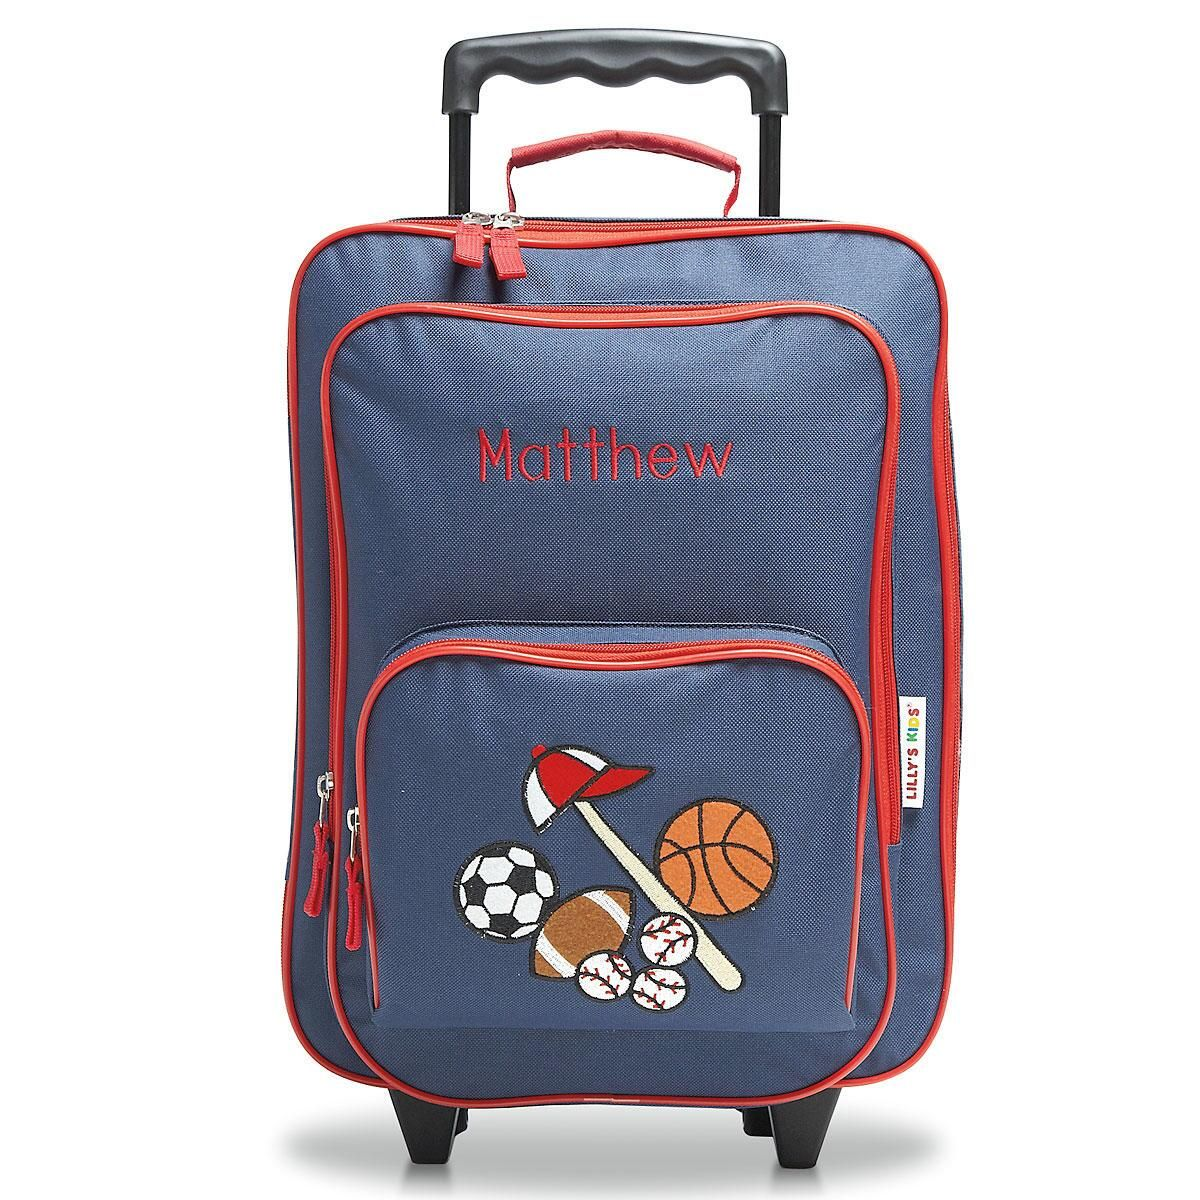 Double All Sports Rolling Luggage Sports Rolling Luggage Lillian Vernon Kids Rolling Luggage Girls Kids Rolling Luggage baby Kids Rolling Luggage